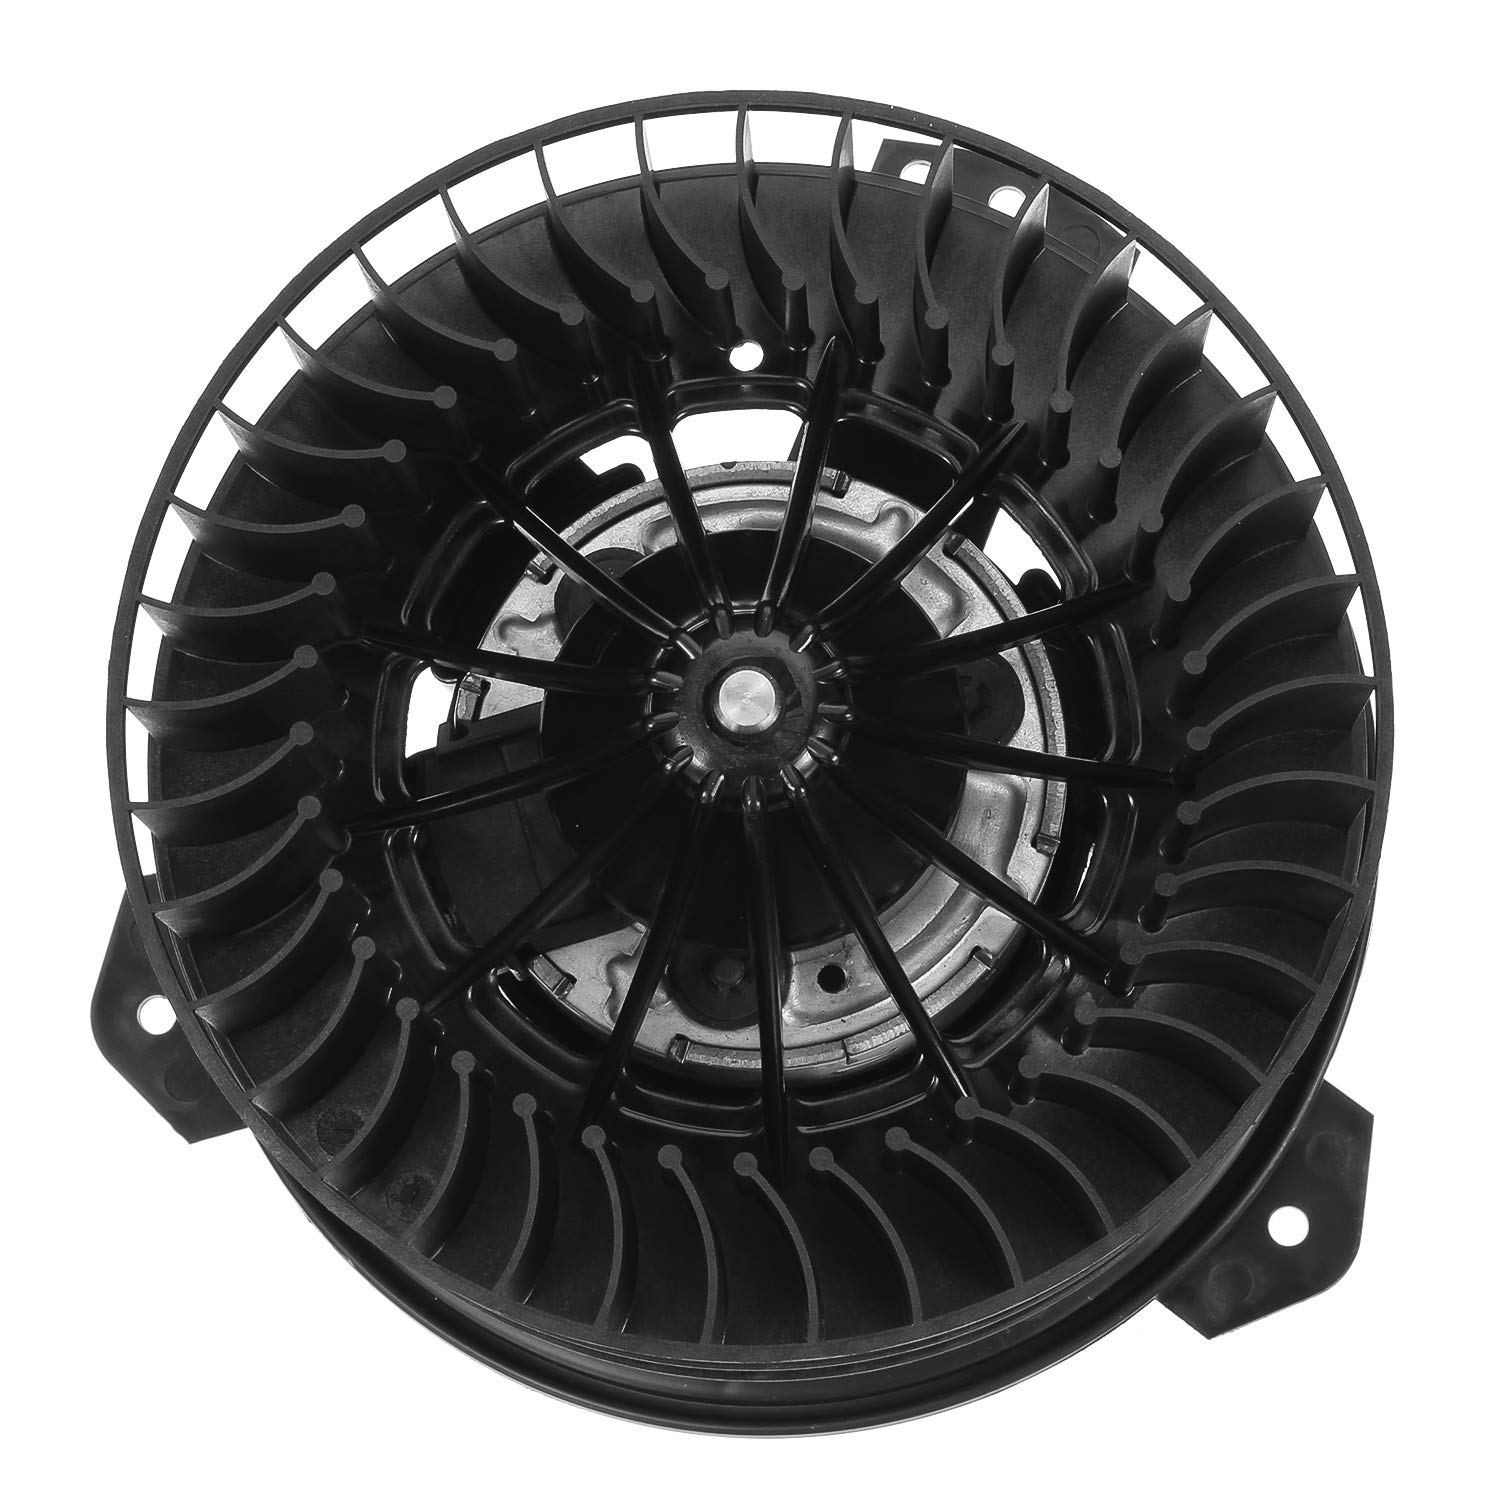 NEW BLOWER ASSEMBLY Fit 2004 2005 2006 2007 2008 CHRYSLER PACIFICA 4885475AC